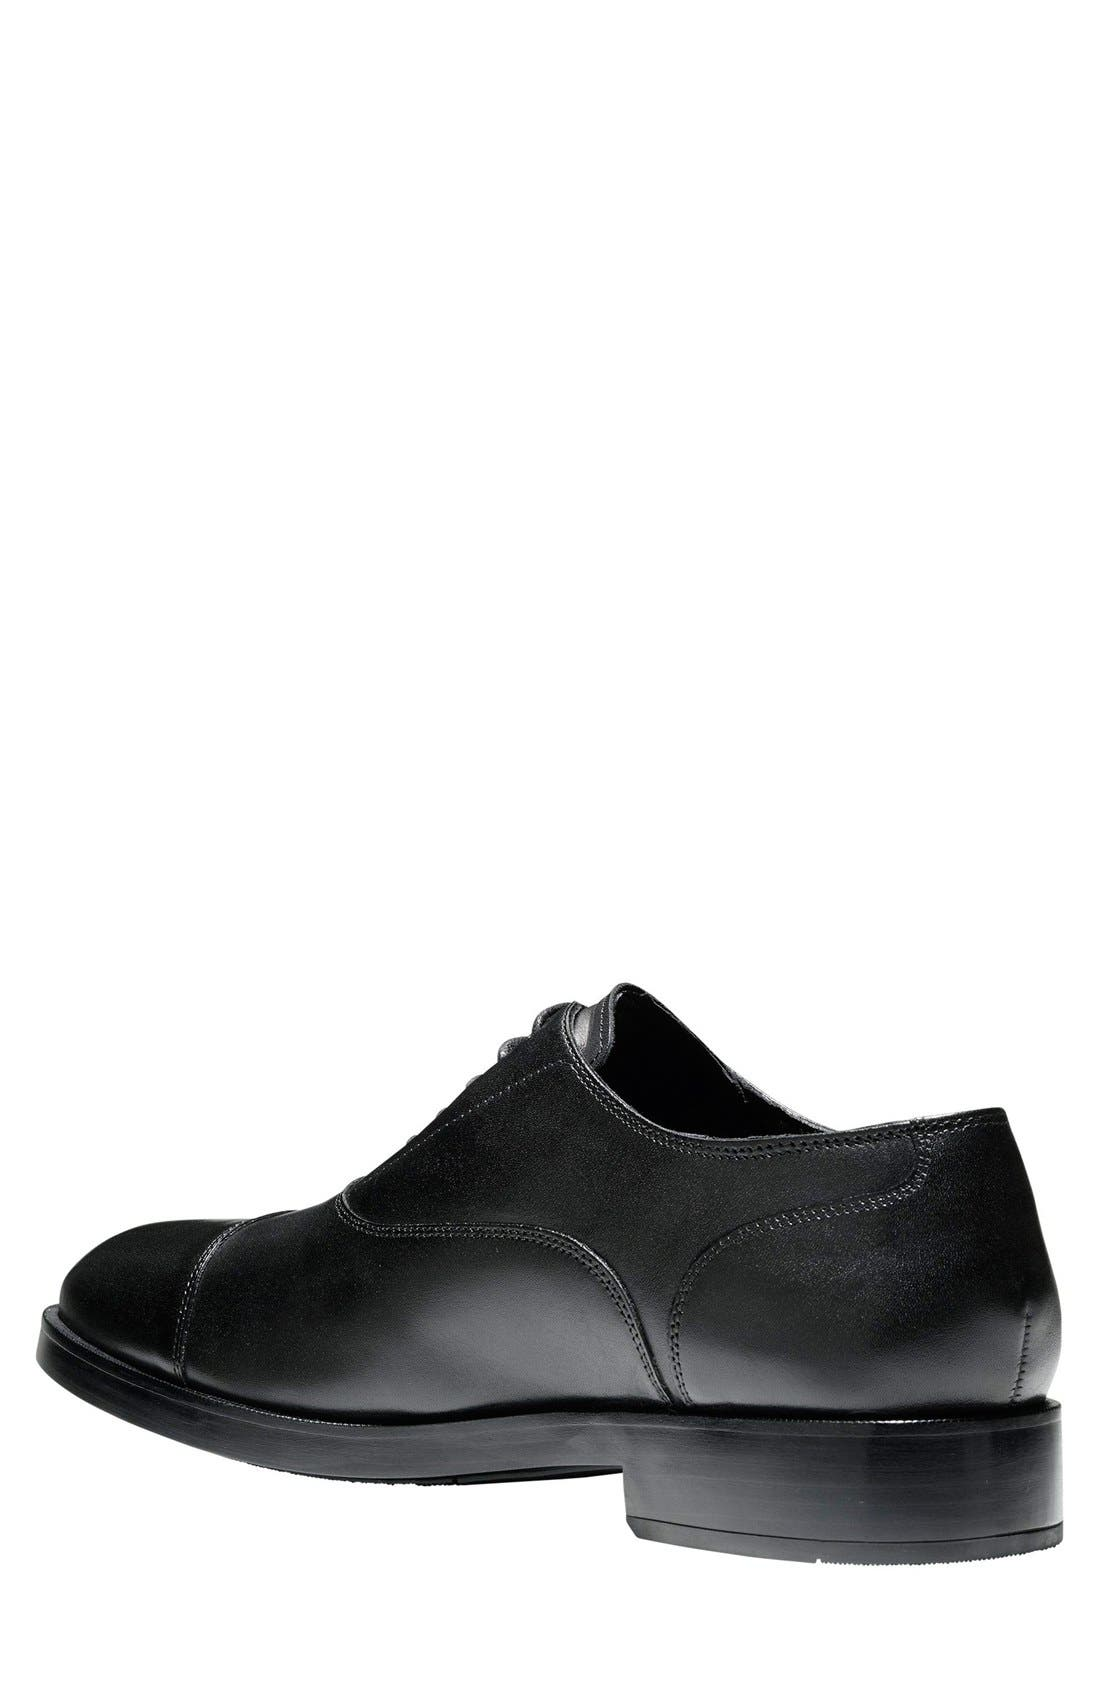 COLE HAAN, Harrison Grand Cap Toe Oxford, Alternate thumbnail 7, color, BLACK/ BLACK LEATHER